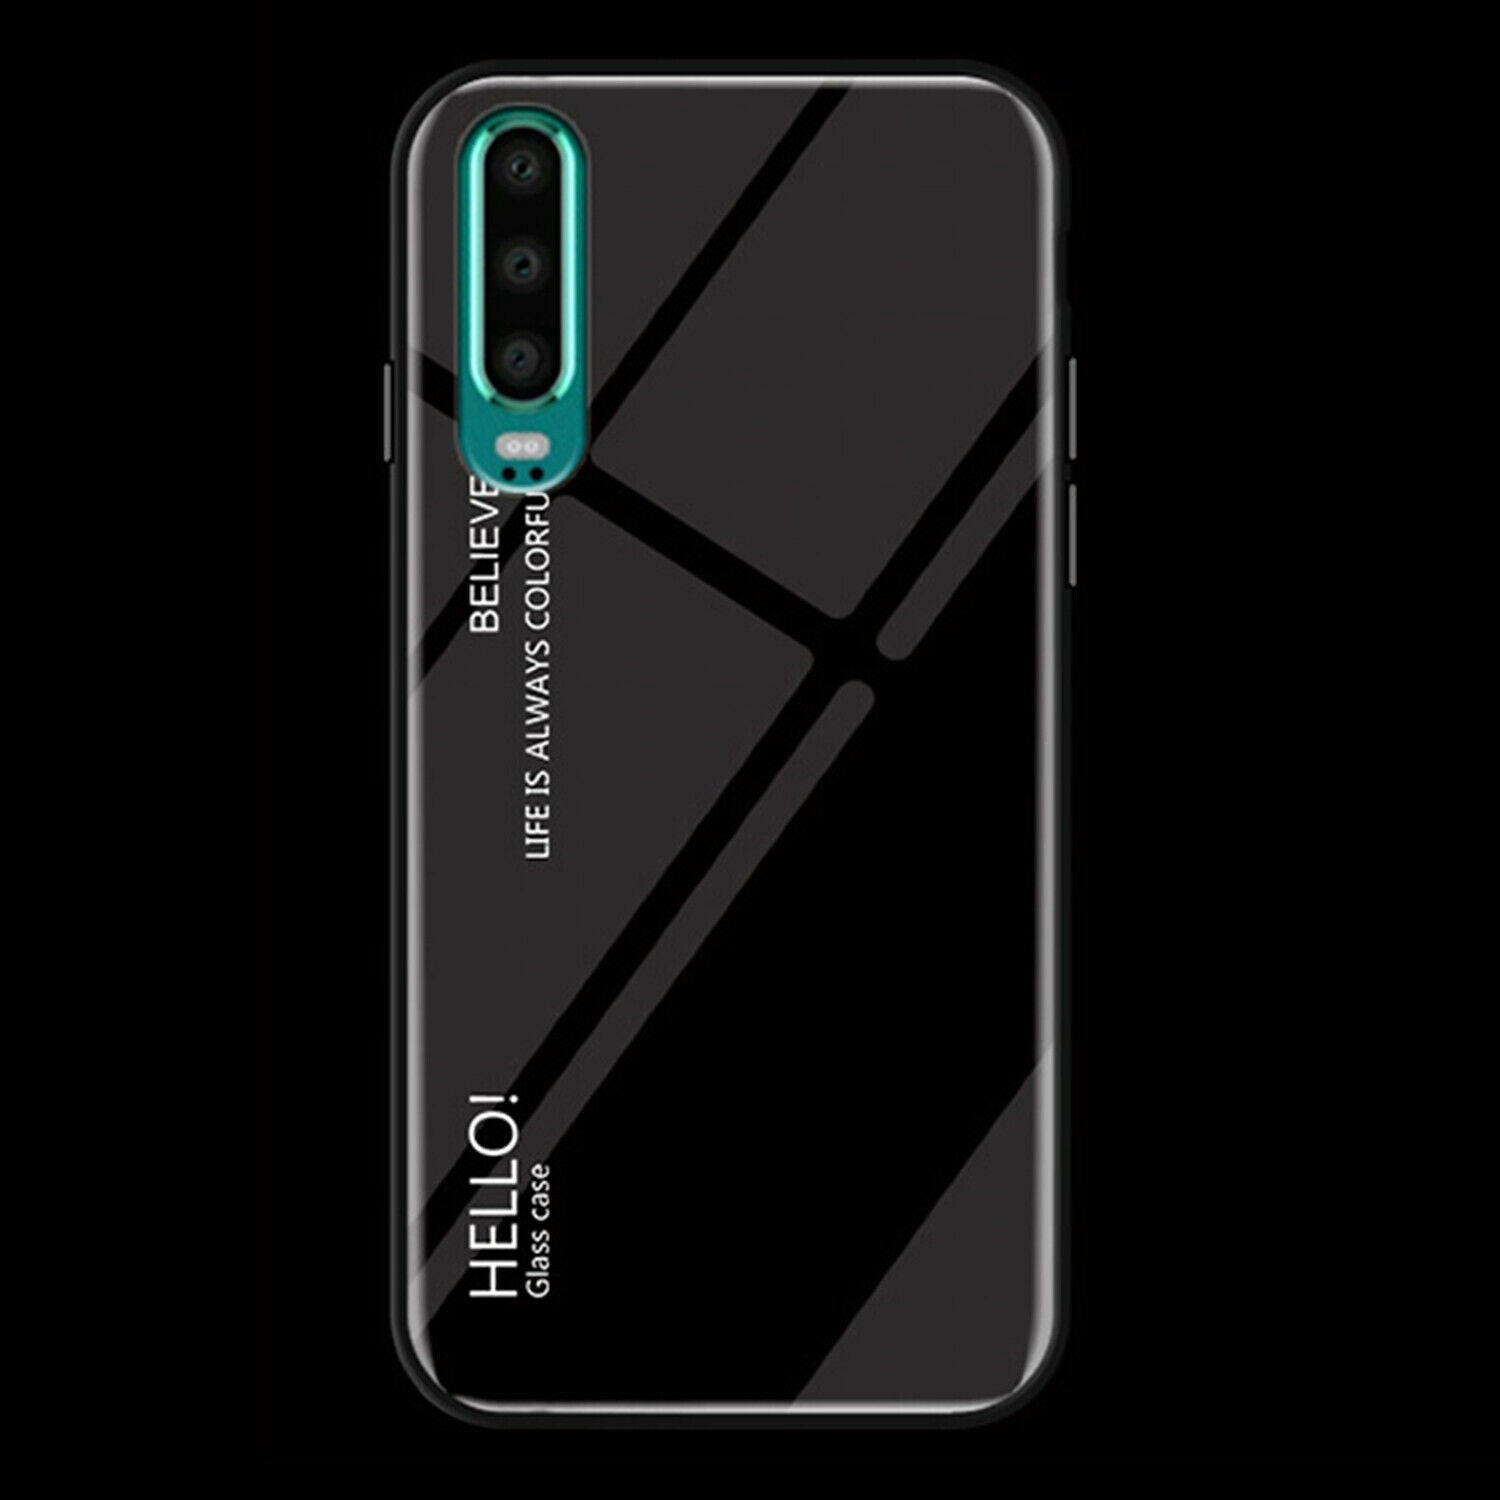 For Huawei Nova 3i Case Shockproof Tempered Glass Bumper Slim Cover-White